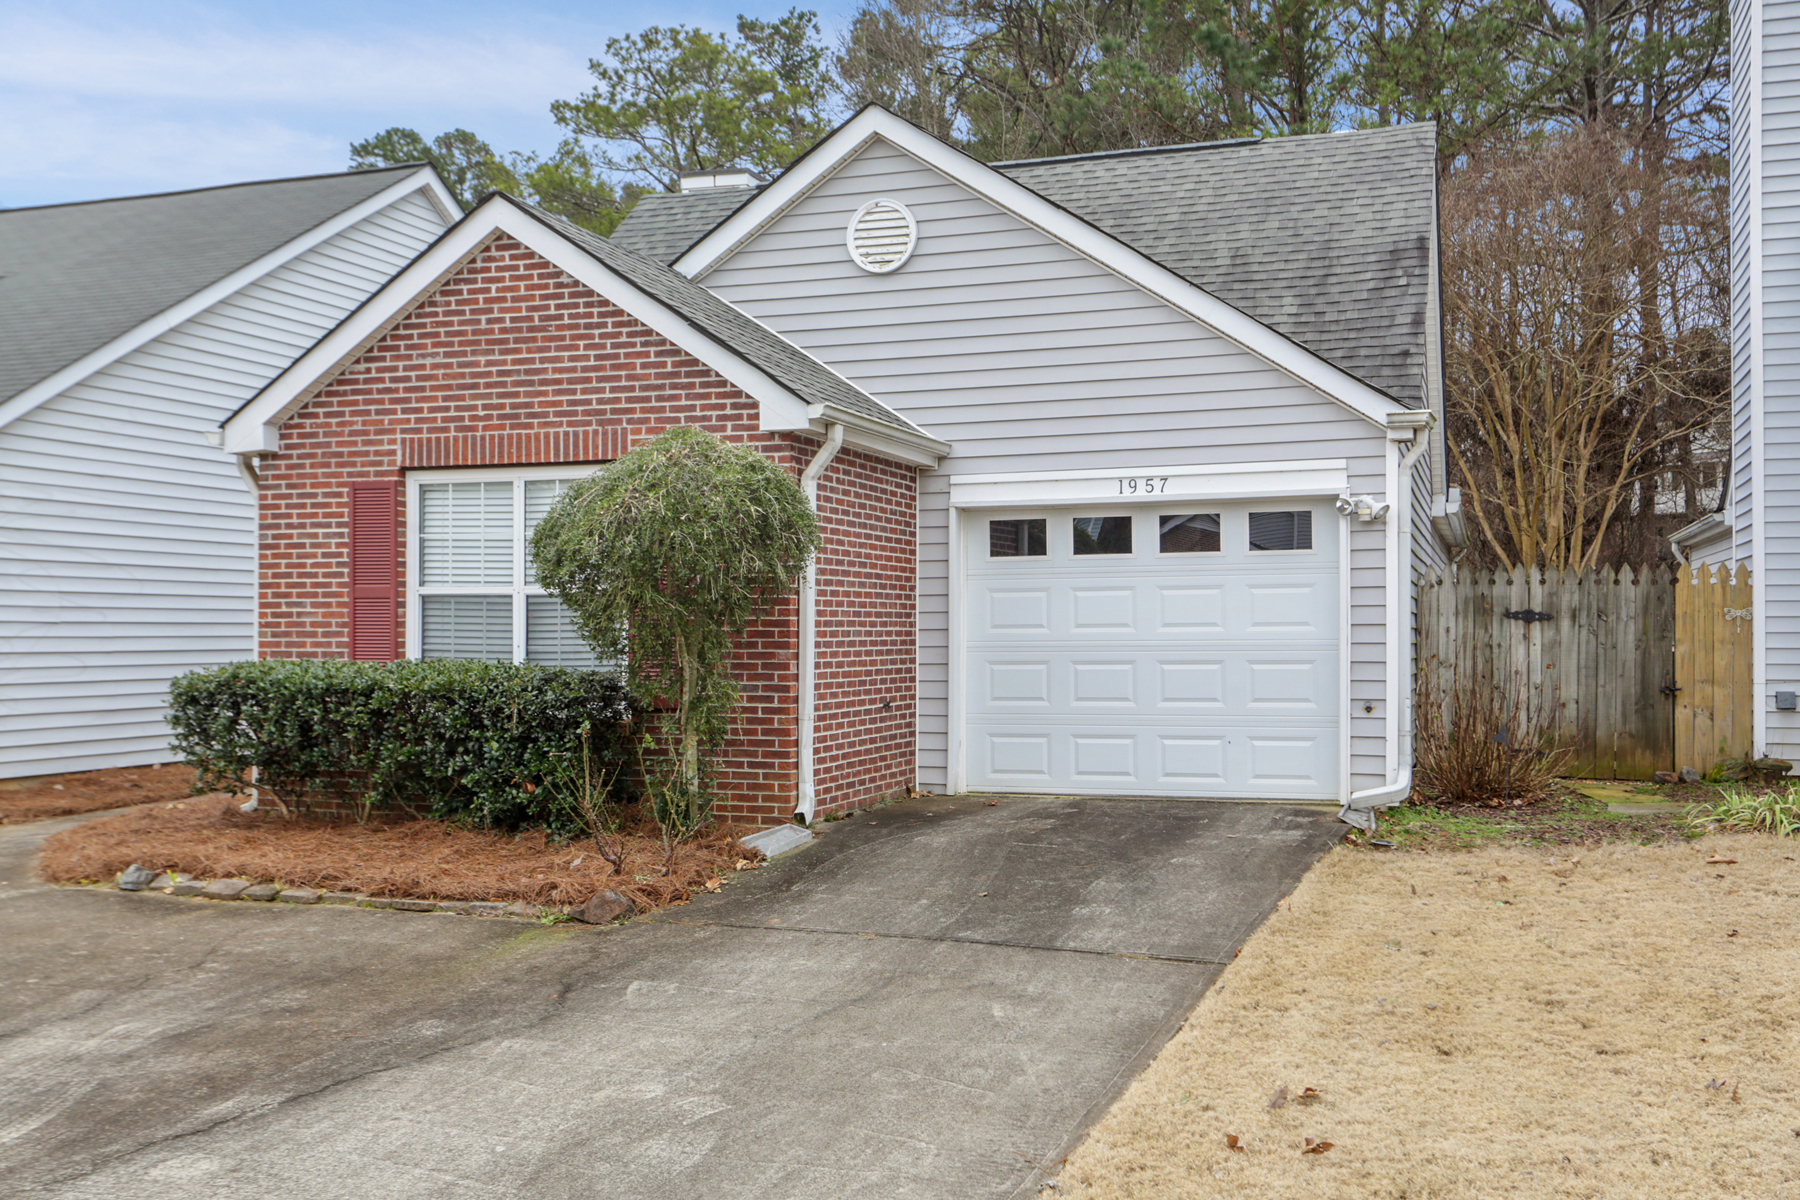 Single Family Home for Sale at Owner Suite On Main 1957 Brittania Circle Woodstock, Georgia 30188 United States